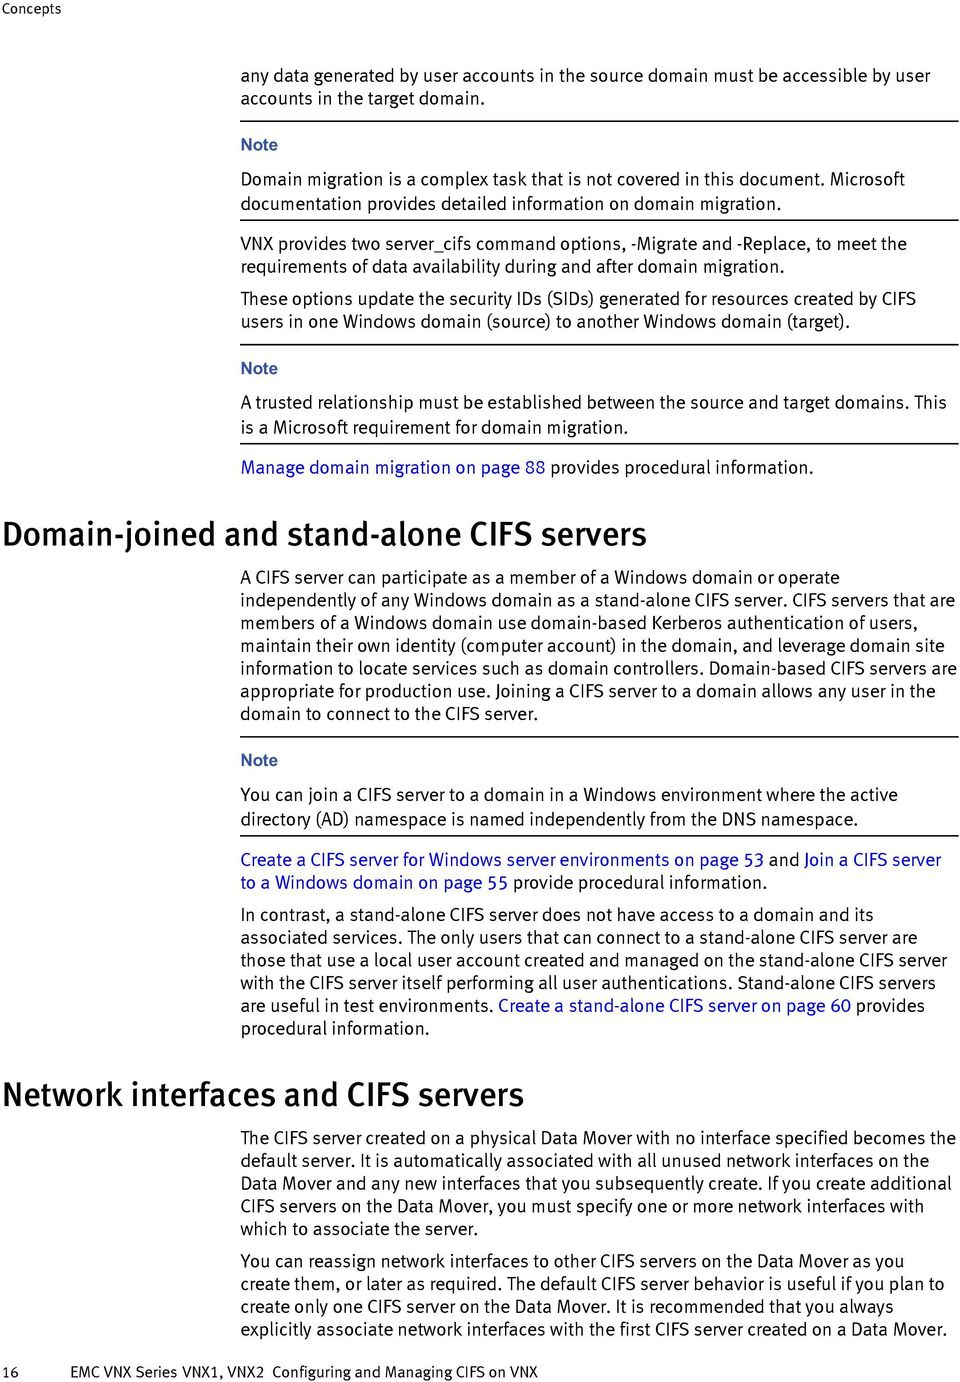 VNX provides two server_cifs command options, -Migrate and -Replace, to meet the requirements of data availability during and after domain migration.